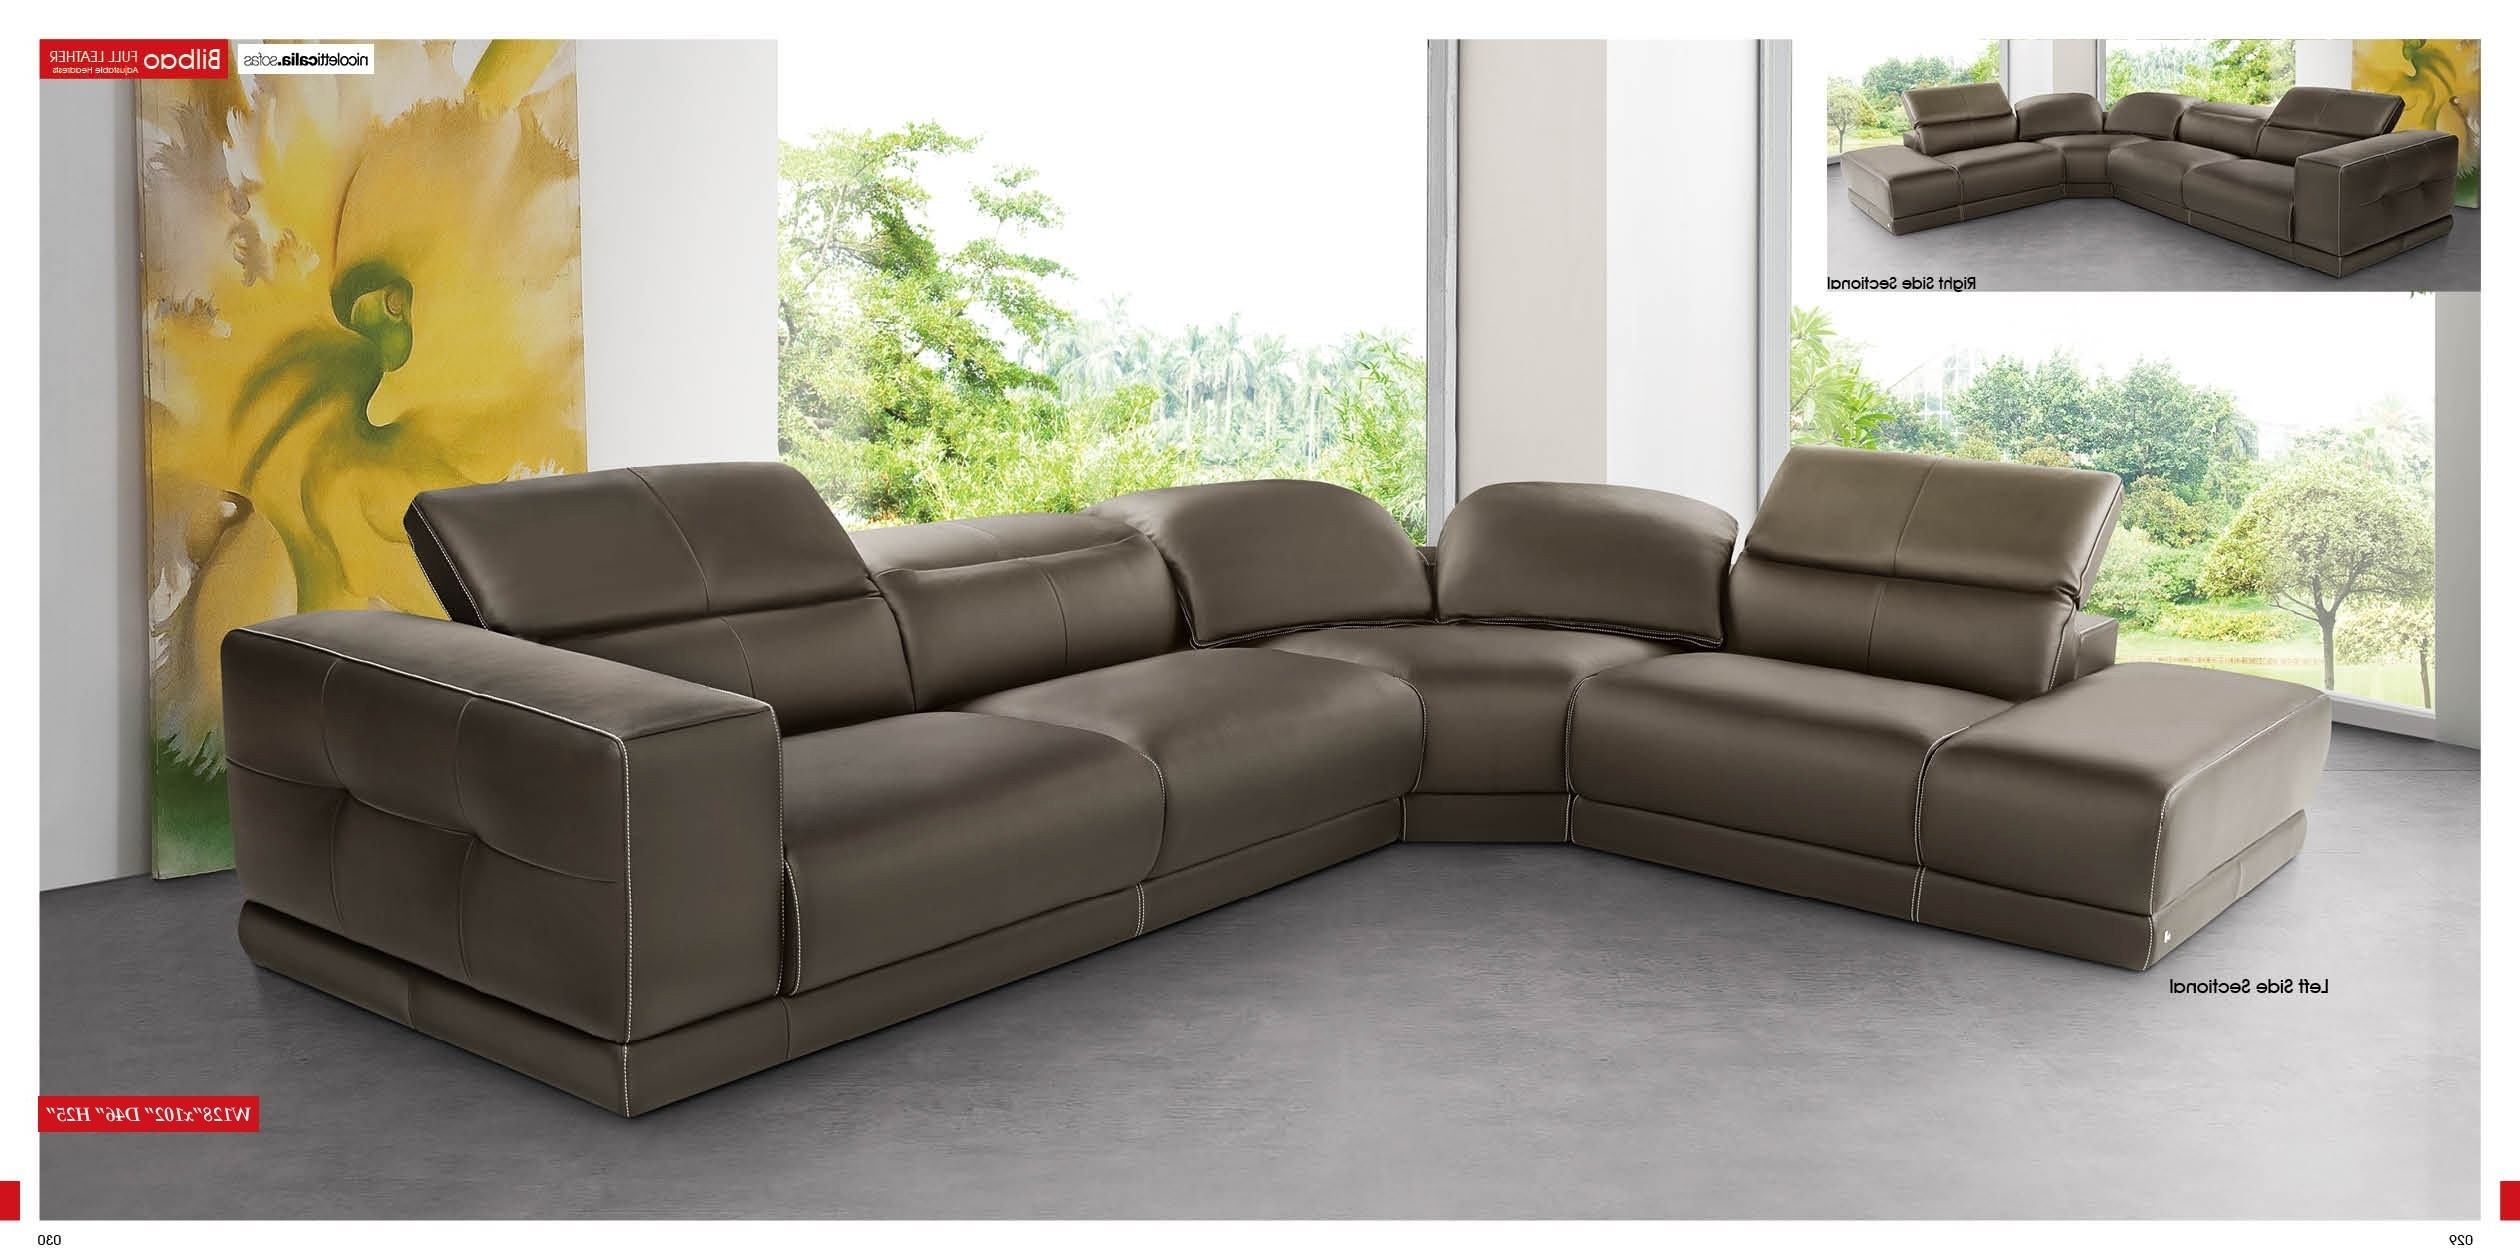 Most Popular Furniture : Sectional Sofa 80 Inches 170 Cm Corner Sofa Recliner Pertaining To Kijiji Calgary Sectional Sofas (View 8 of 15)